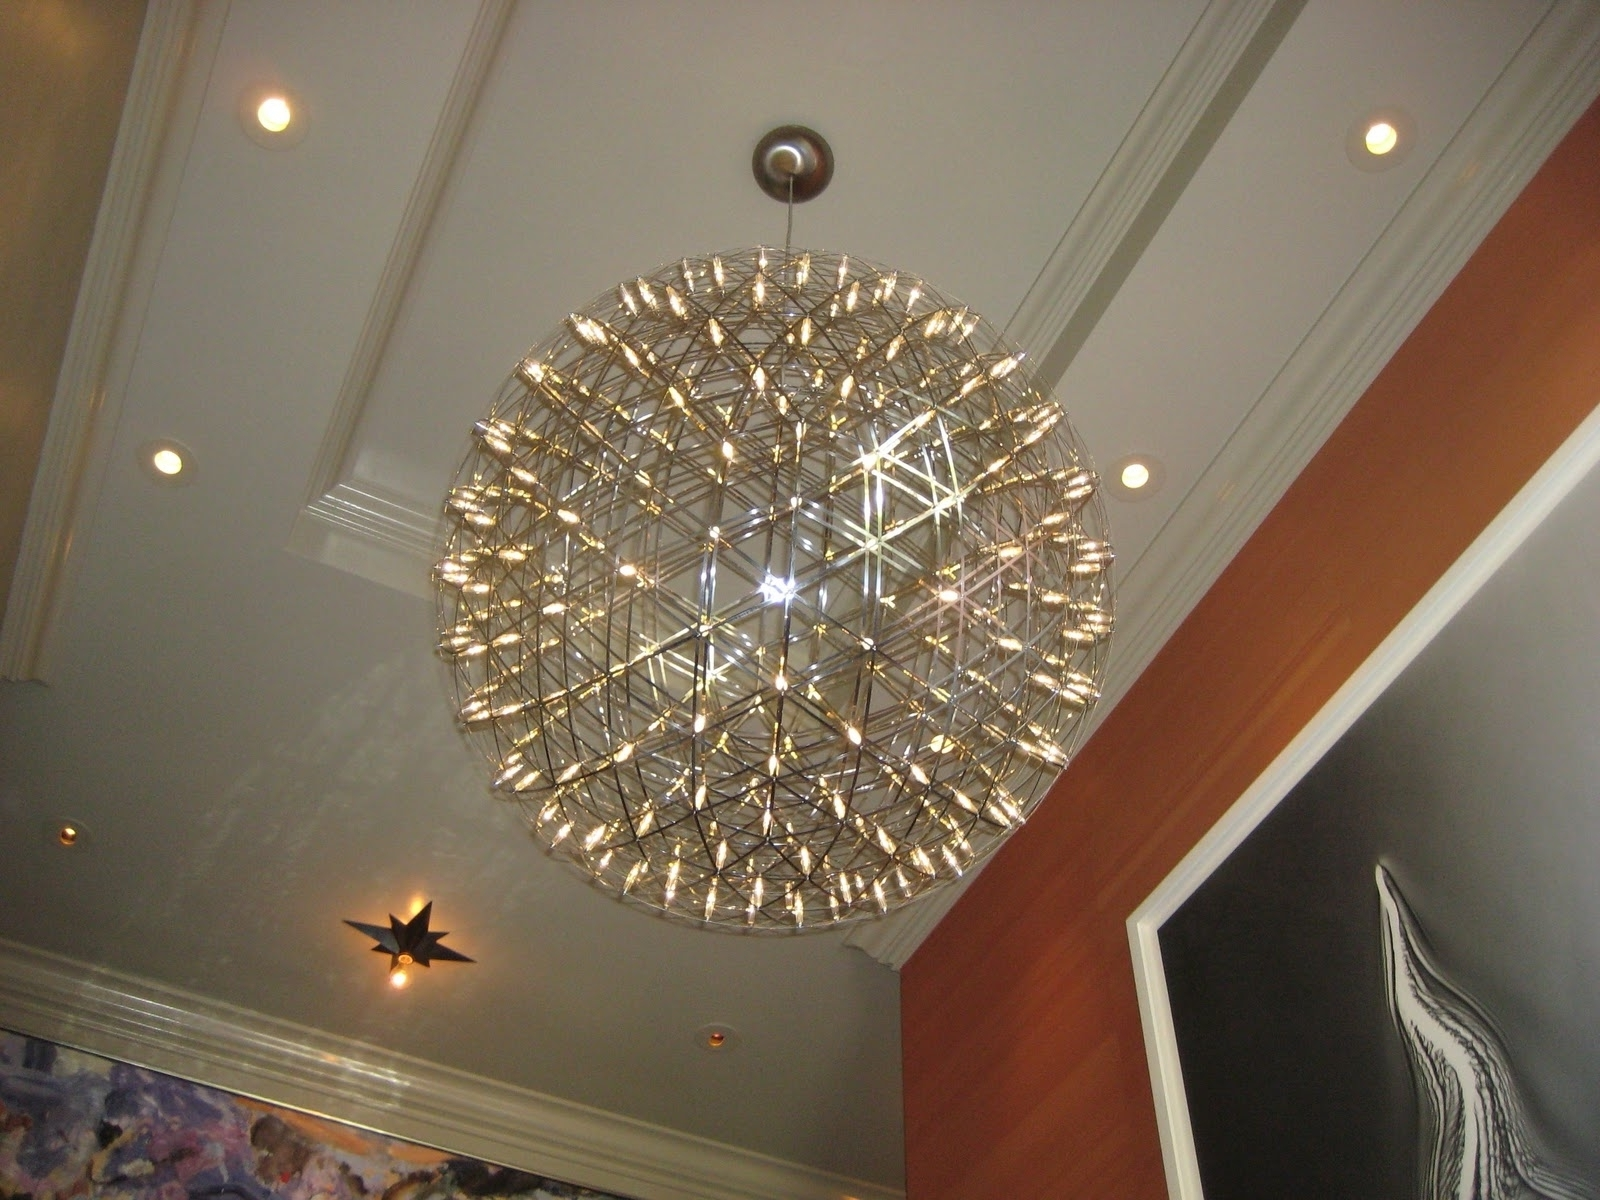 Large Modern Chandeliers Intended For Best And Newest Large Chandeliers Modern – Chandelier Designs (View 7 of 20)